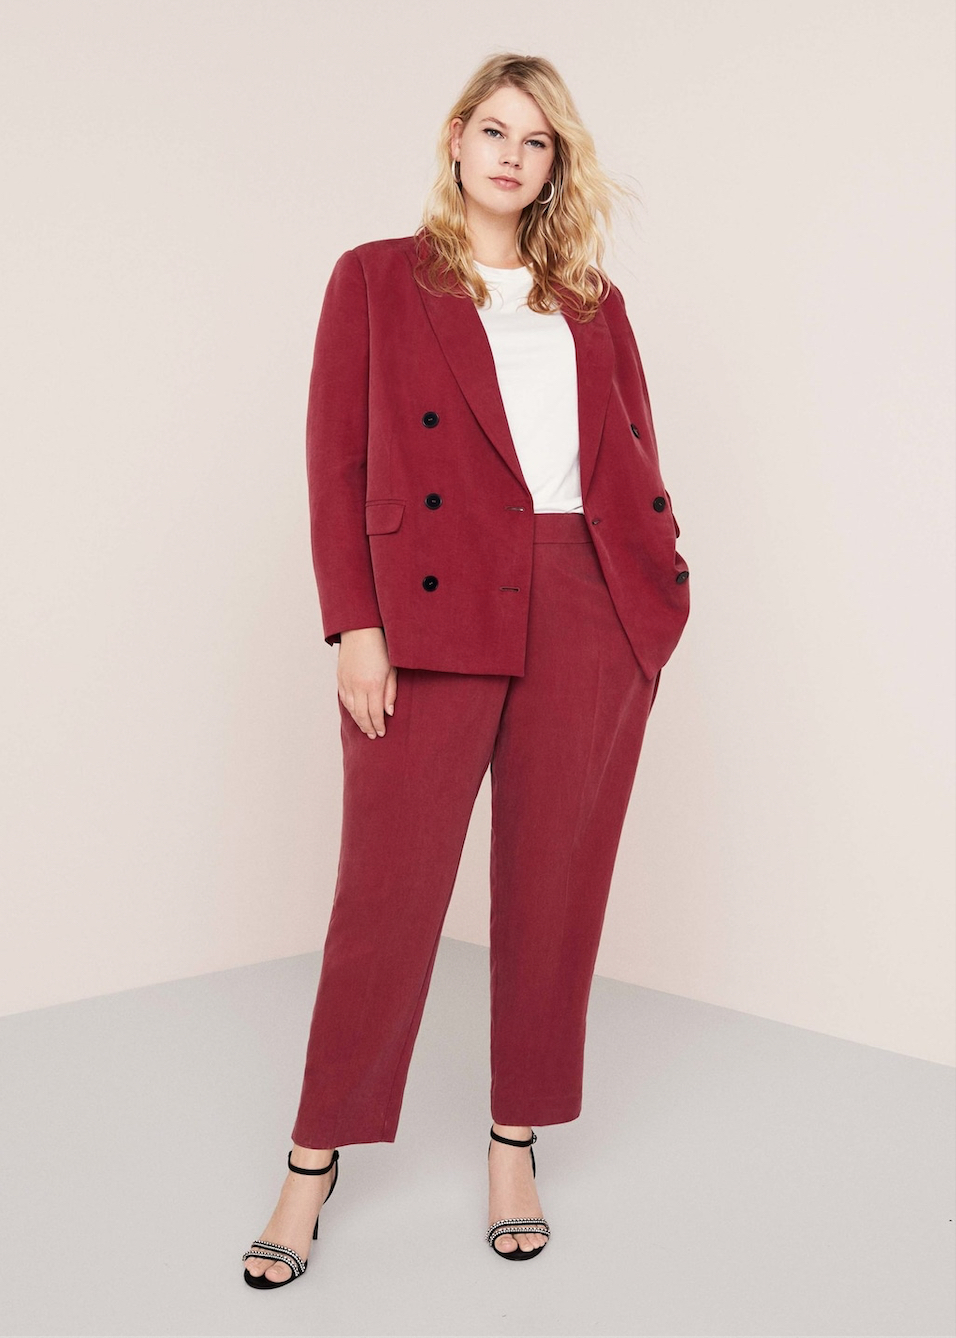 Violeta By MANGO corduroy suit jacket, $99.95    Violeta By MANGO corduroy pants, $69.95